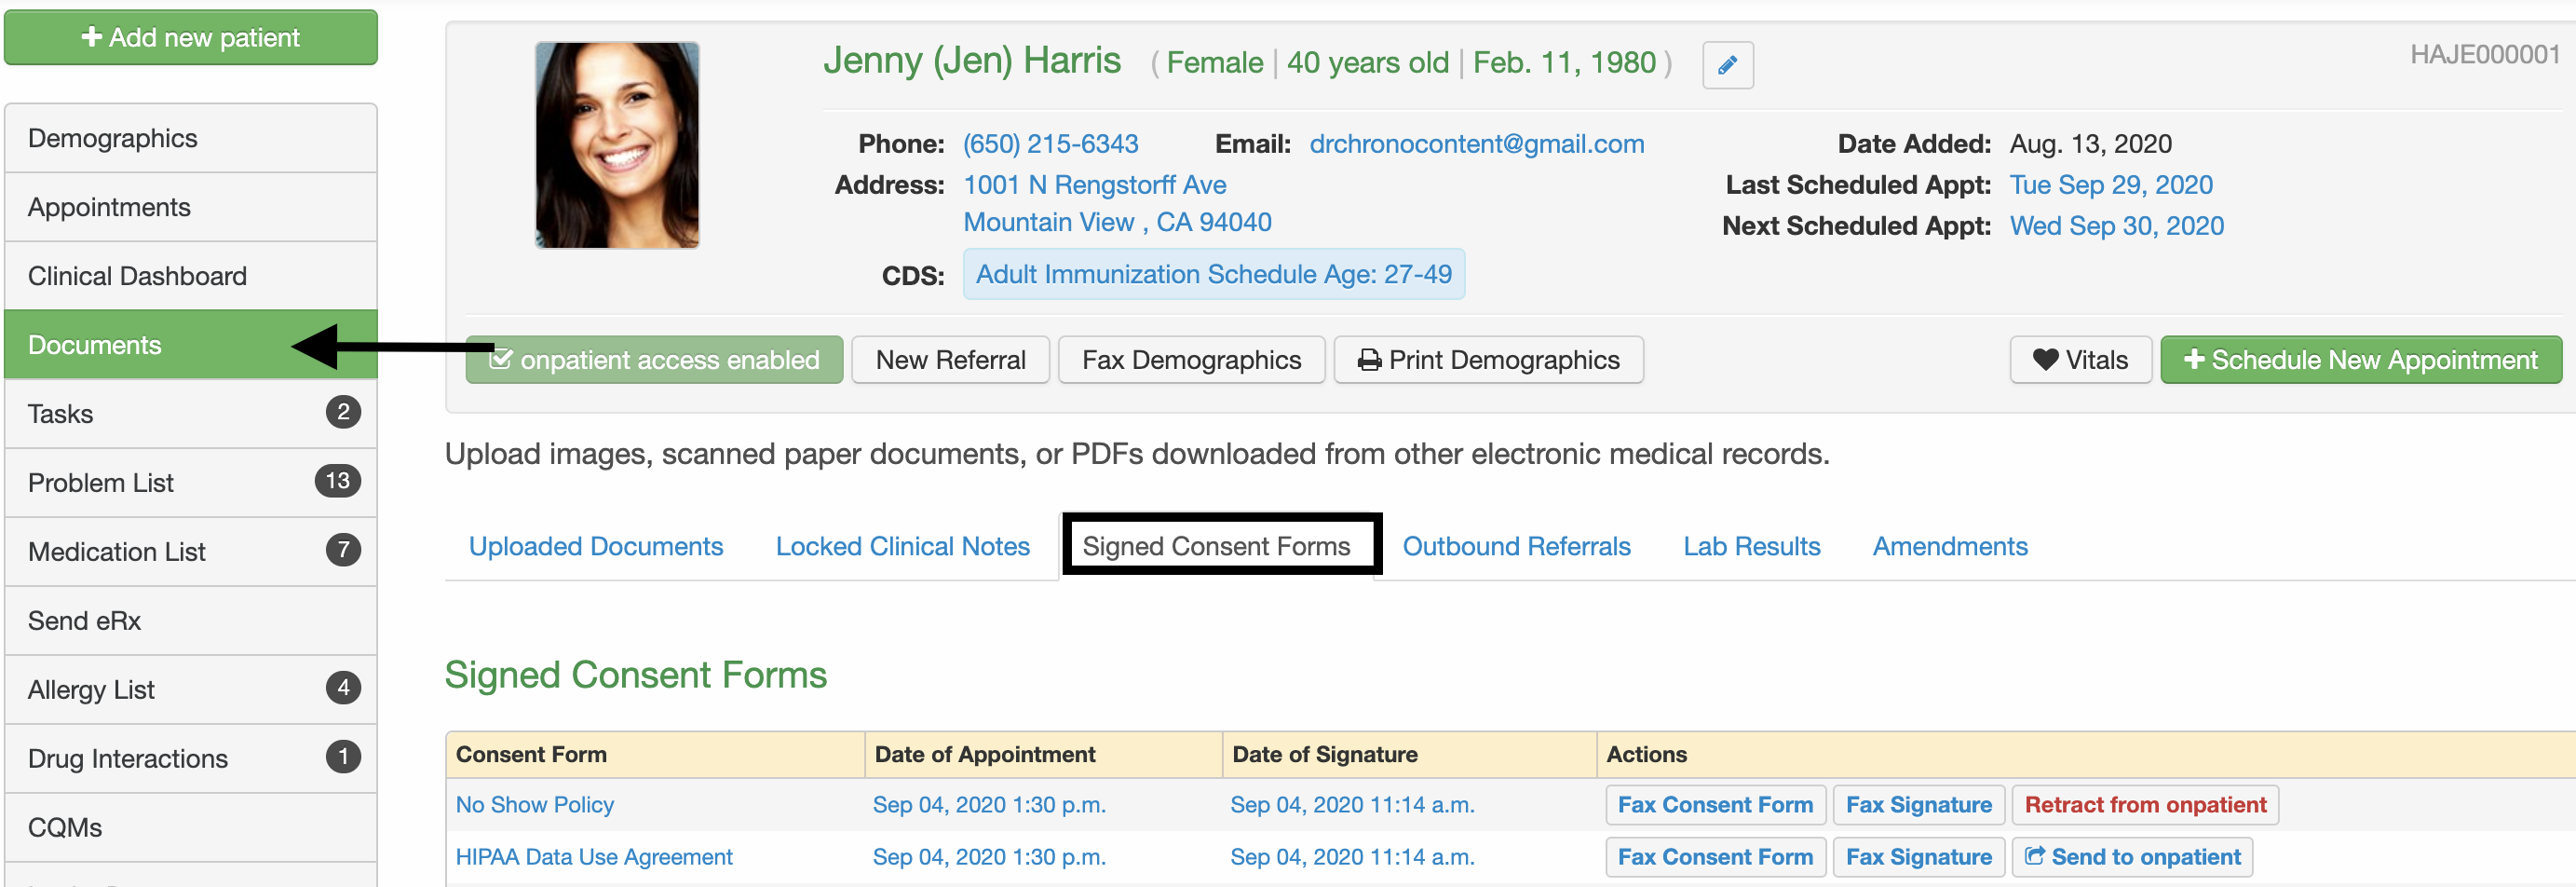 Patient_Chart_Documents-Signed_Consent_Forms.png